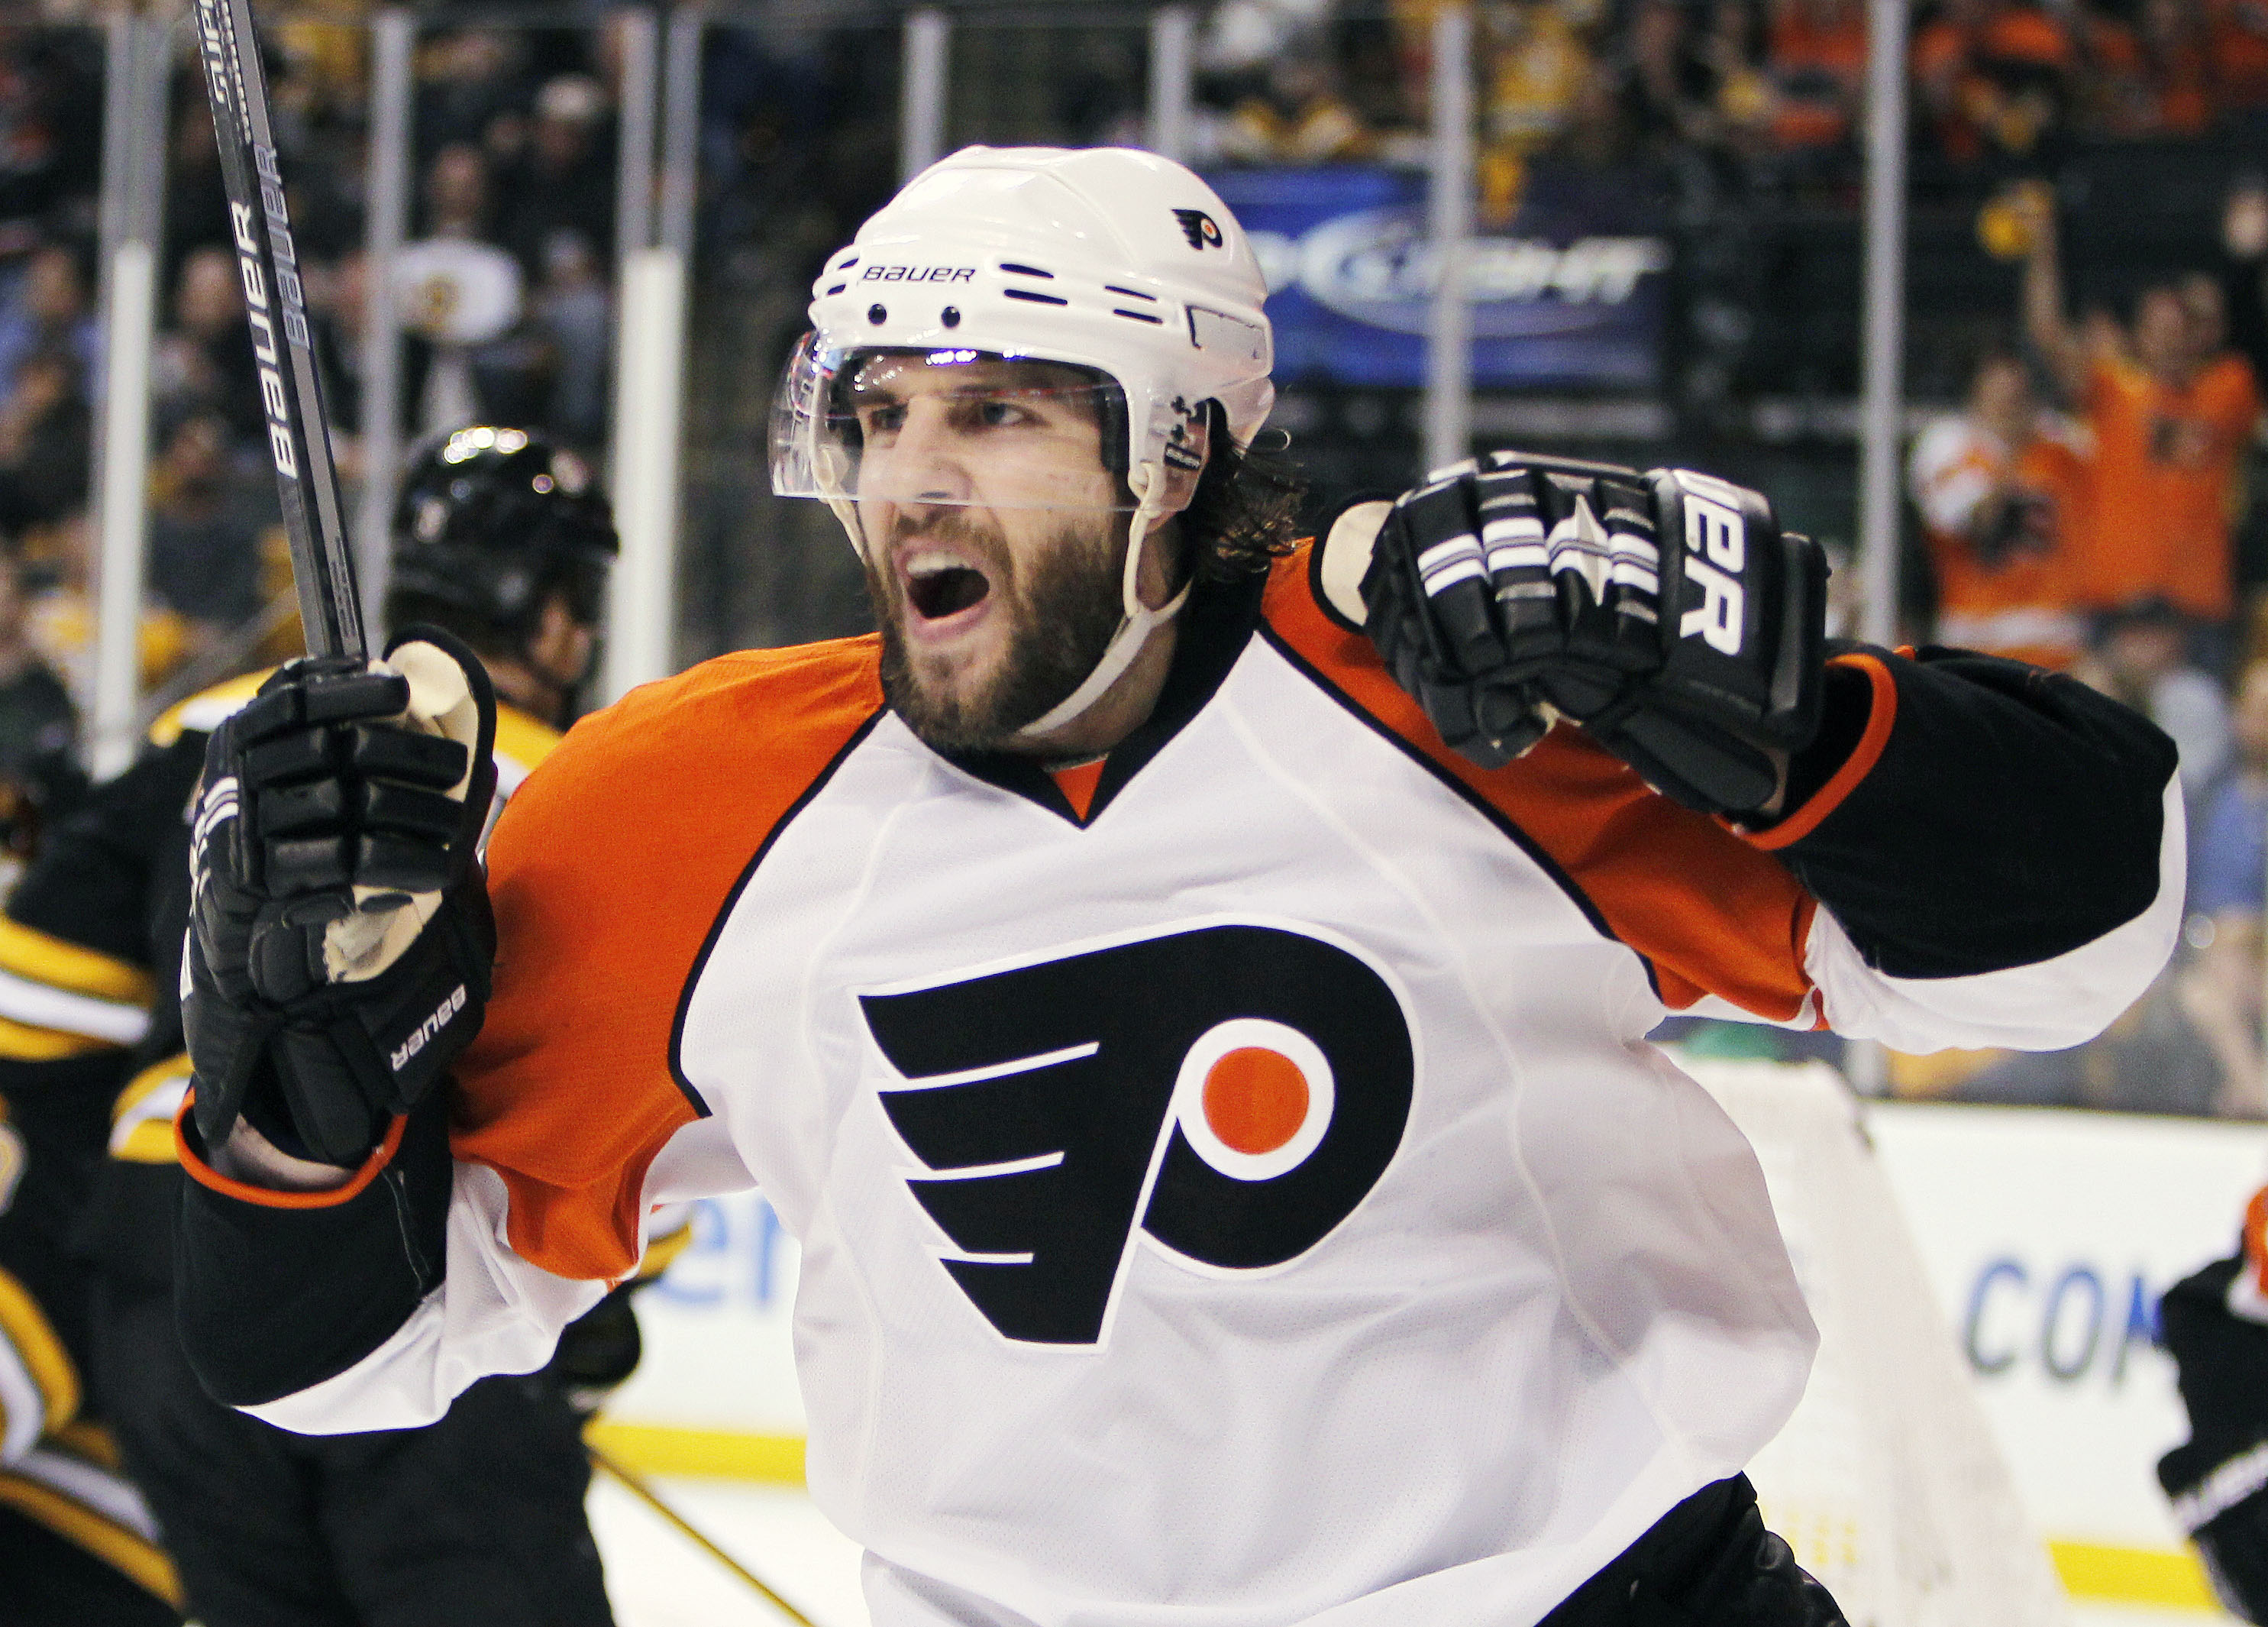 FILE - In this May 14, 2010, file photo, Philadelphia Flyers' Simon Gagne celebrates his go-ahead goal in the third period of Game 7 of a second-round NHL playoff hockey series against the Boston Bruins in Boston. Gagne, who had 291 goals and 310 assists